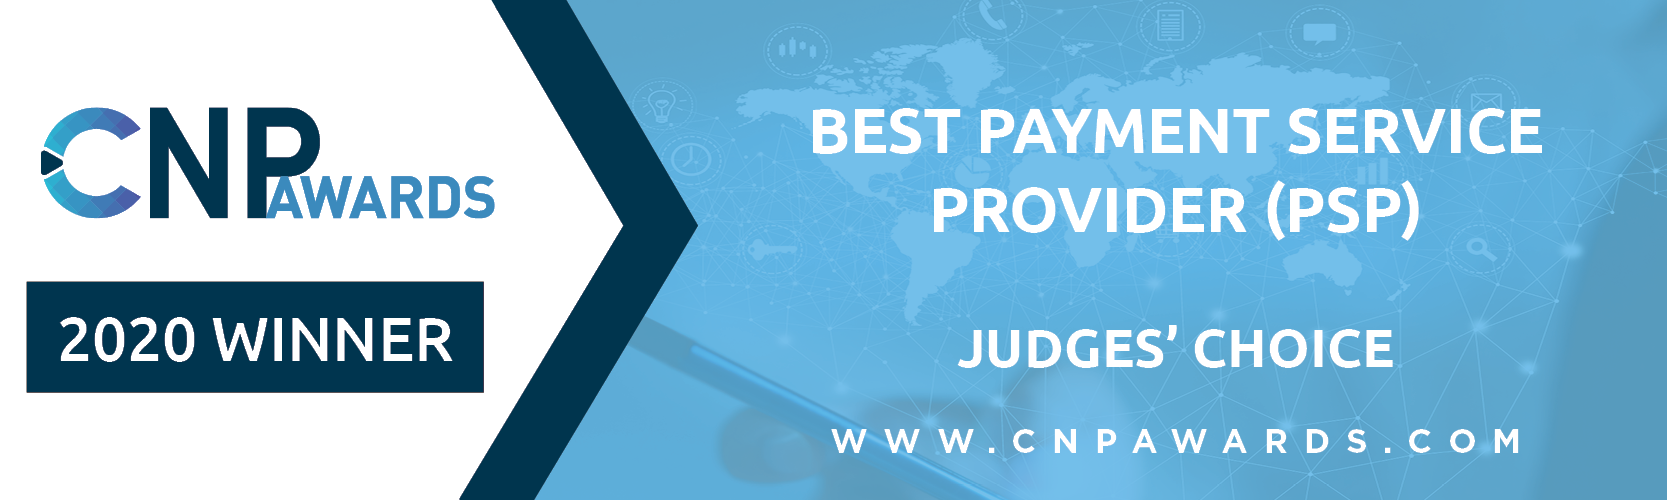 CNPAwards_Email Banner Template-Judges Choice_Best Payment Service Provider (PSP)